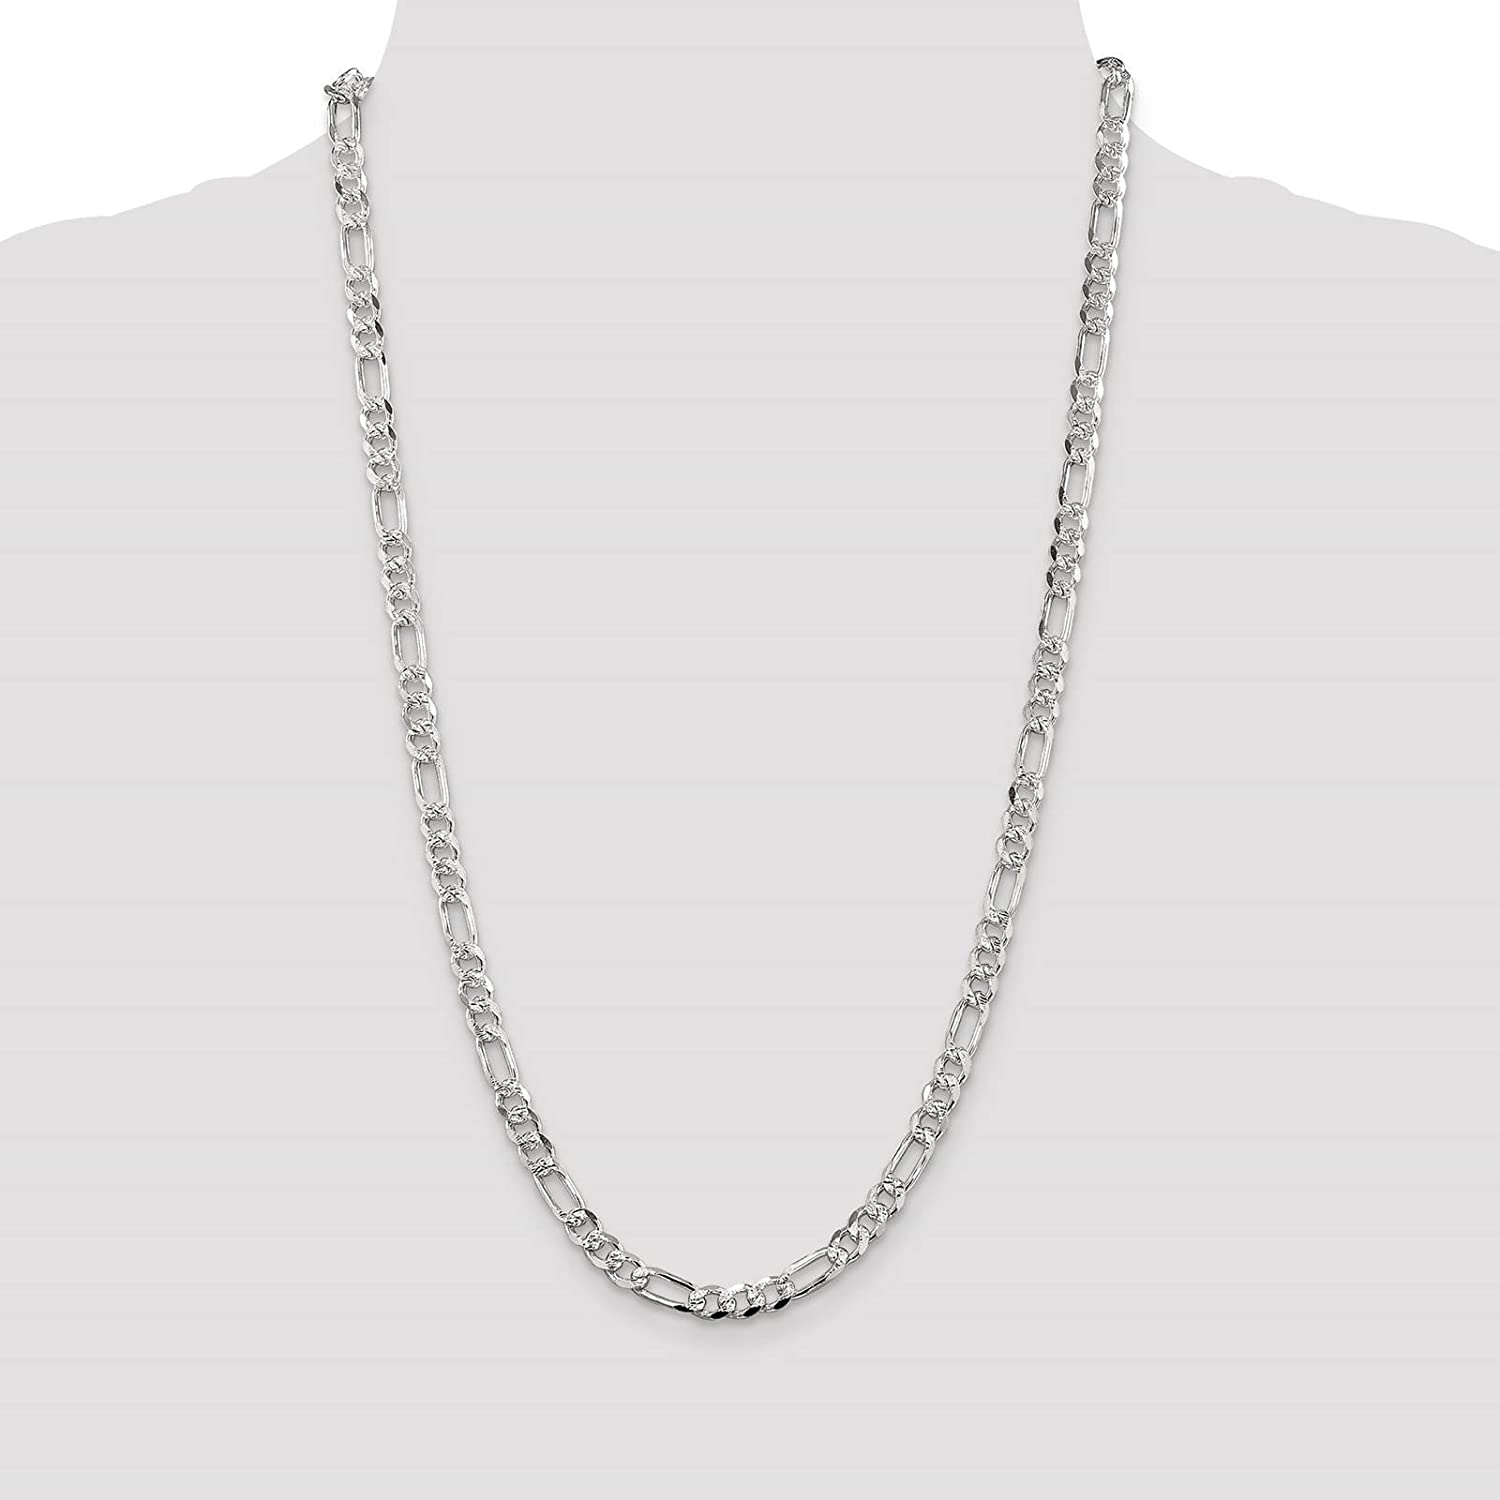 925 Sterling Silver 5.5mm Polished Pave Flat Figaro Link Chain Necklace 7-24